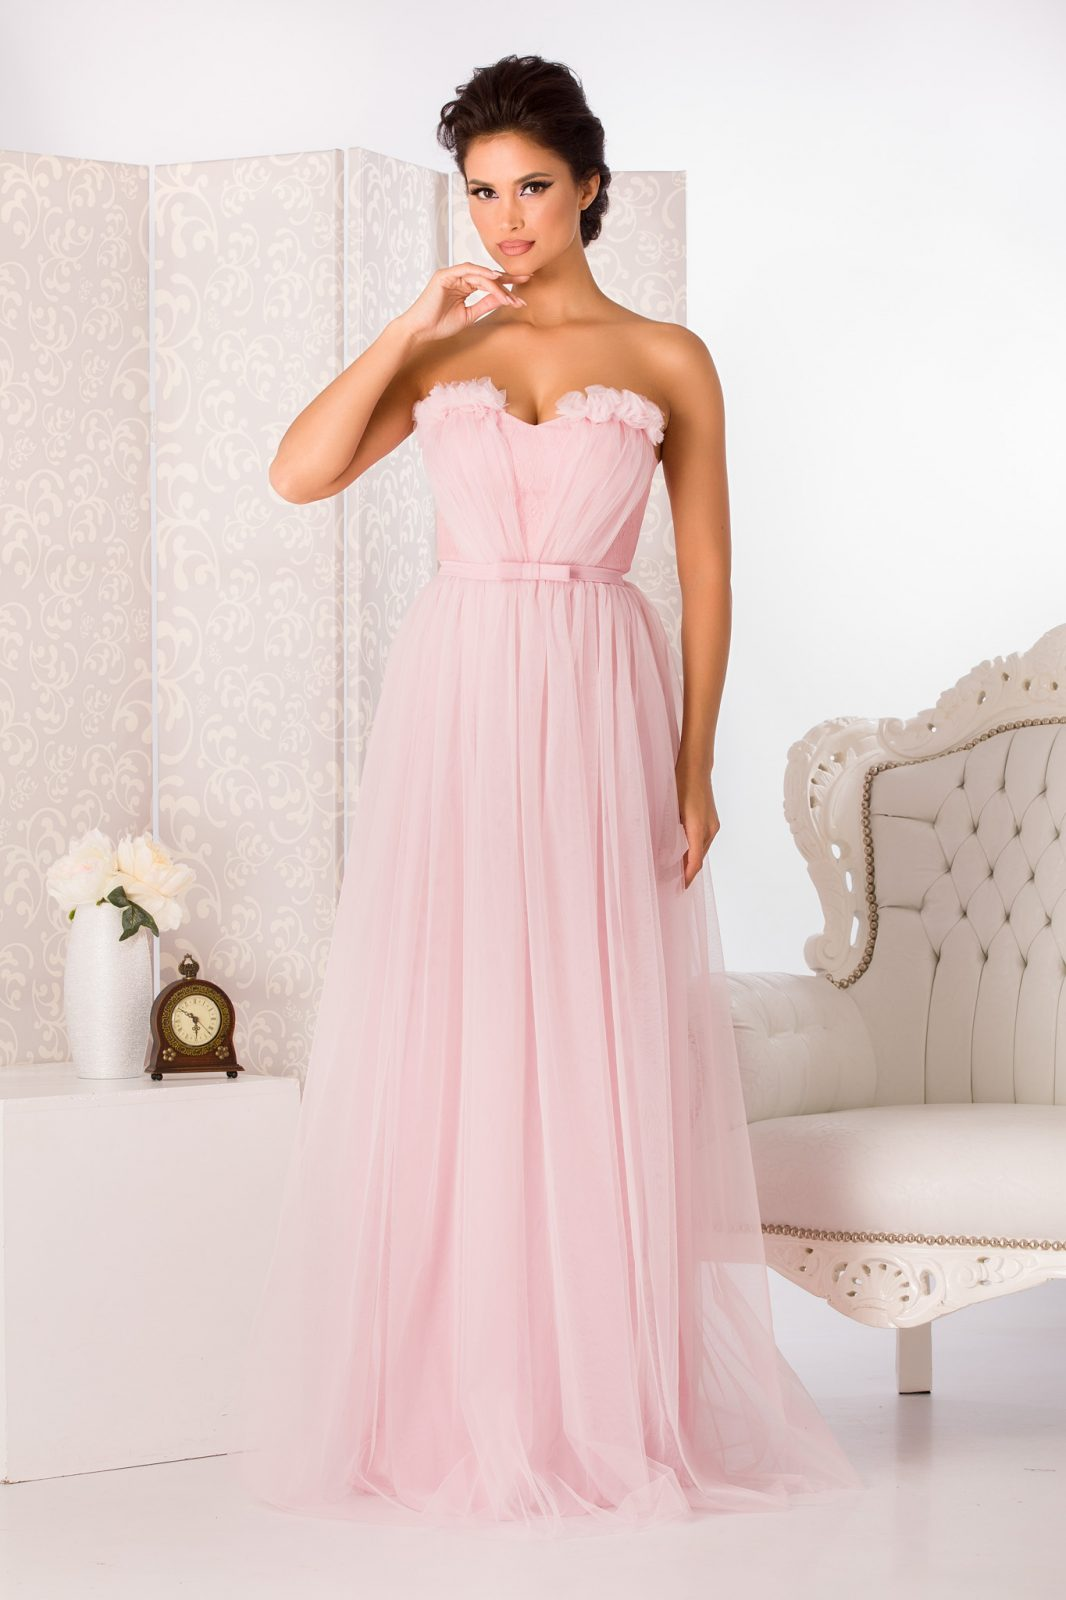 La Donna Anastasia Pink Dress